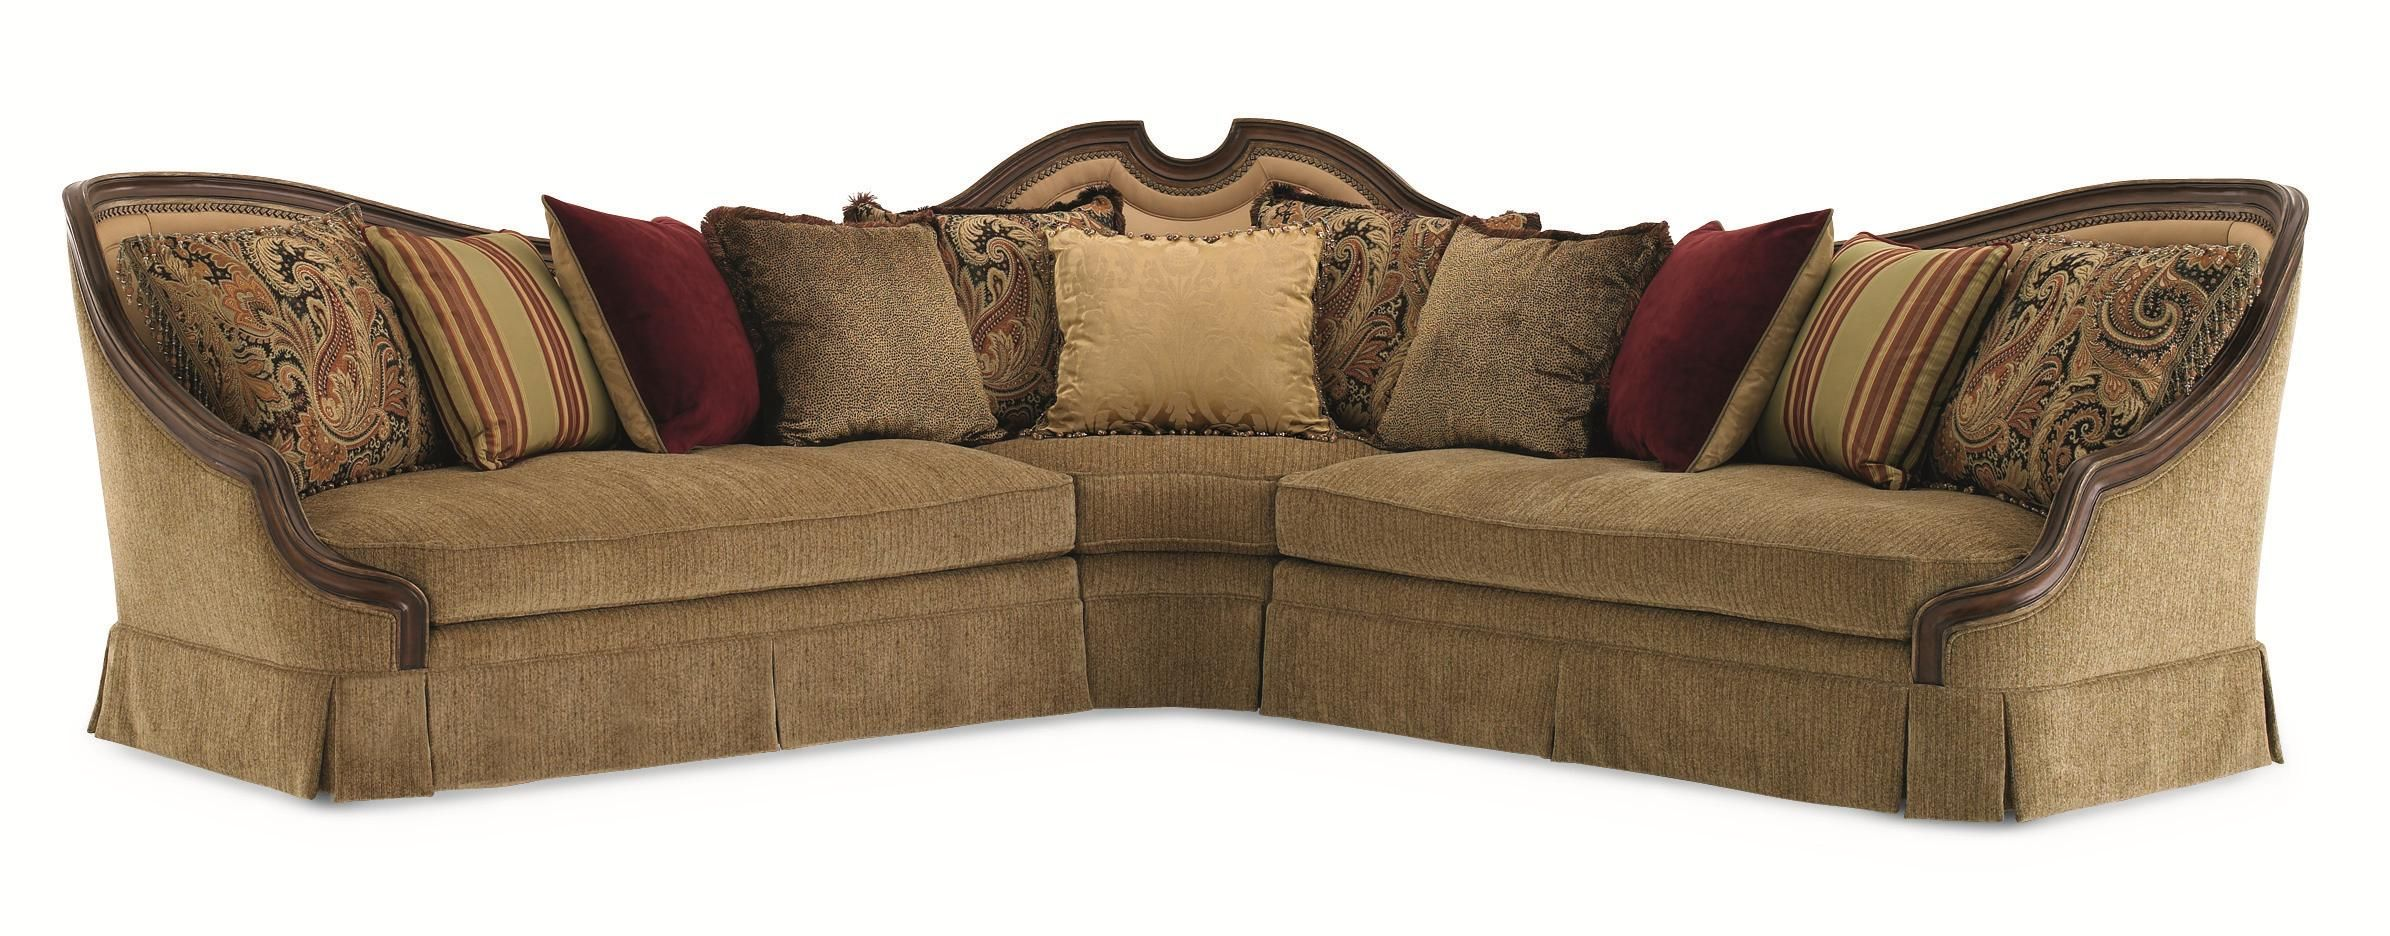 Wyeth Sofa Sectional Group By Schnadig